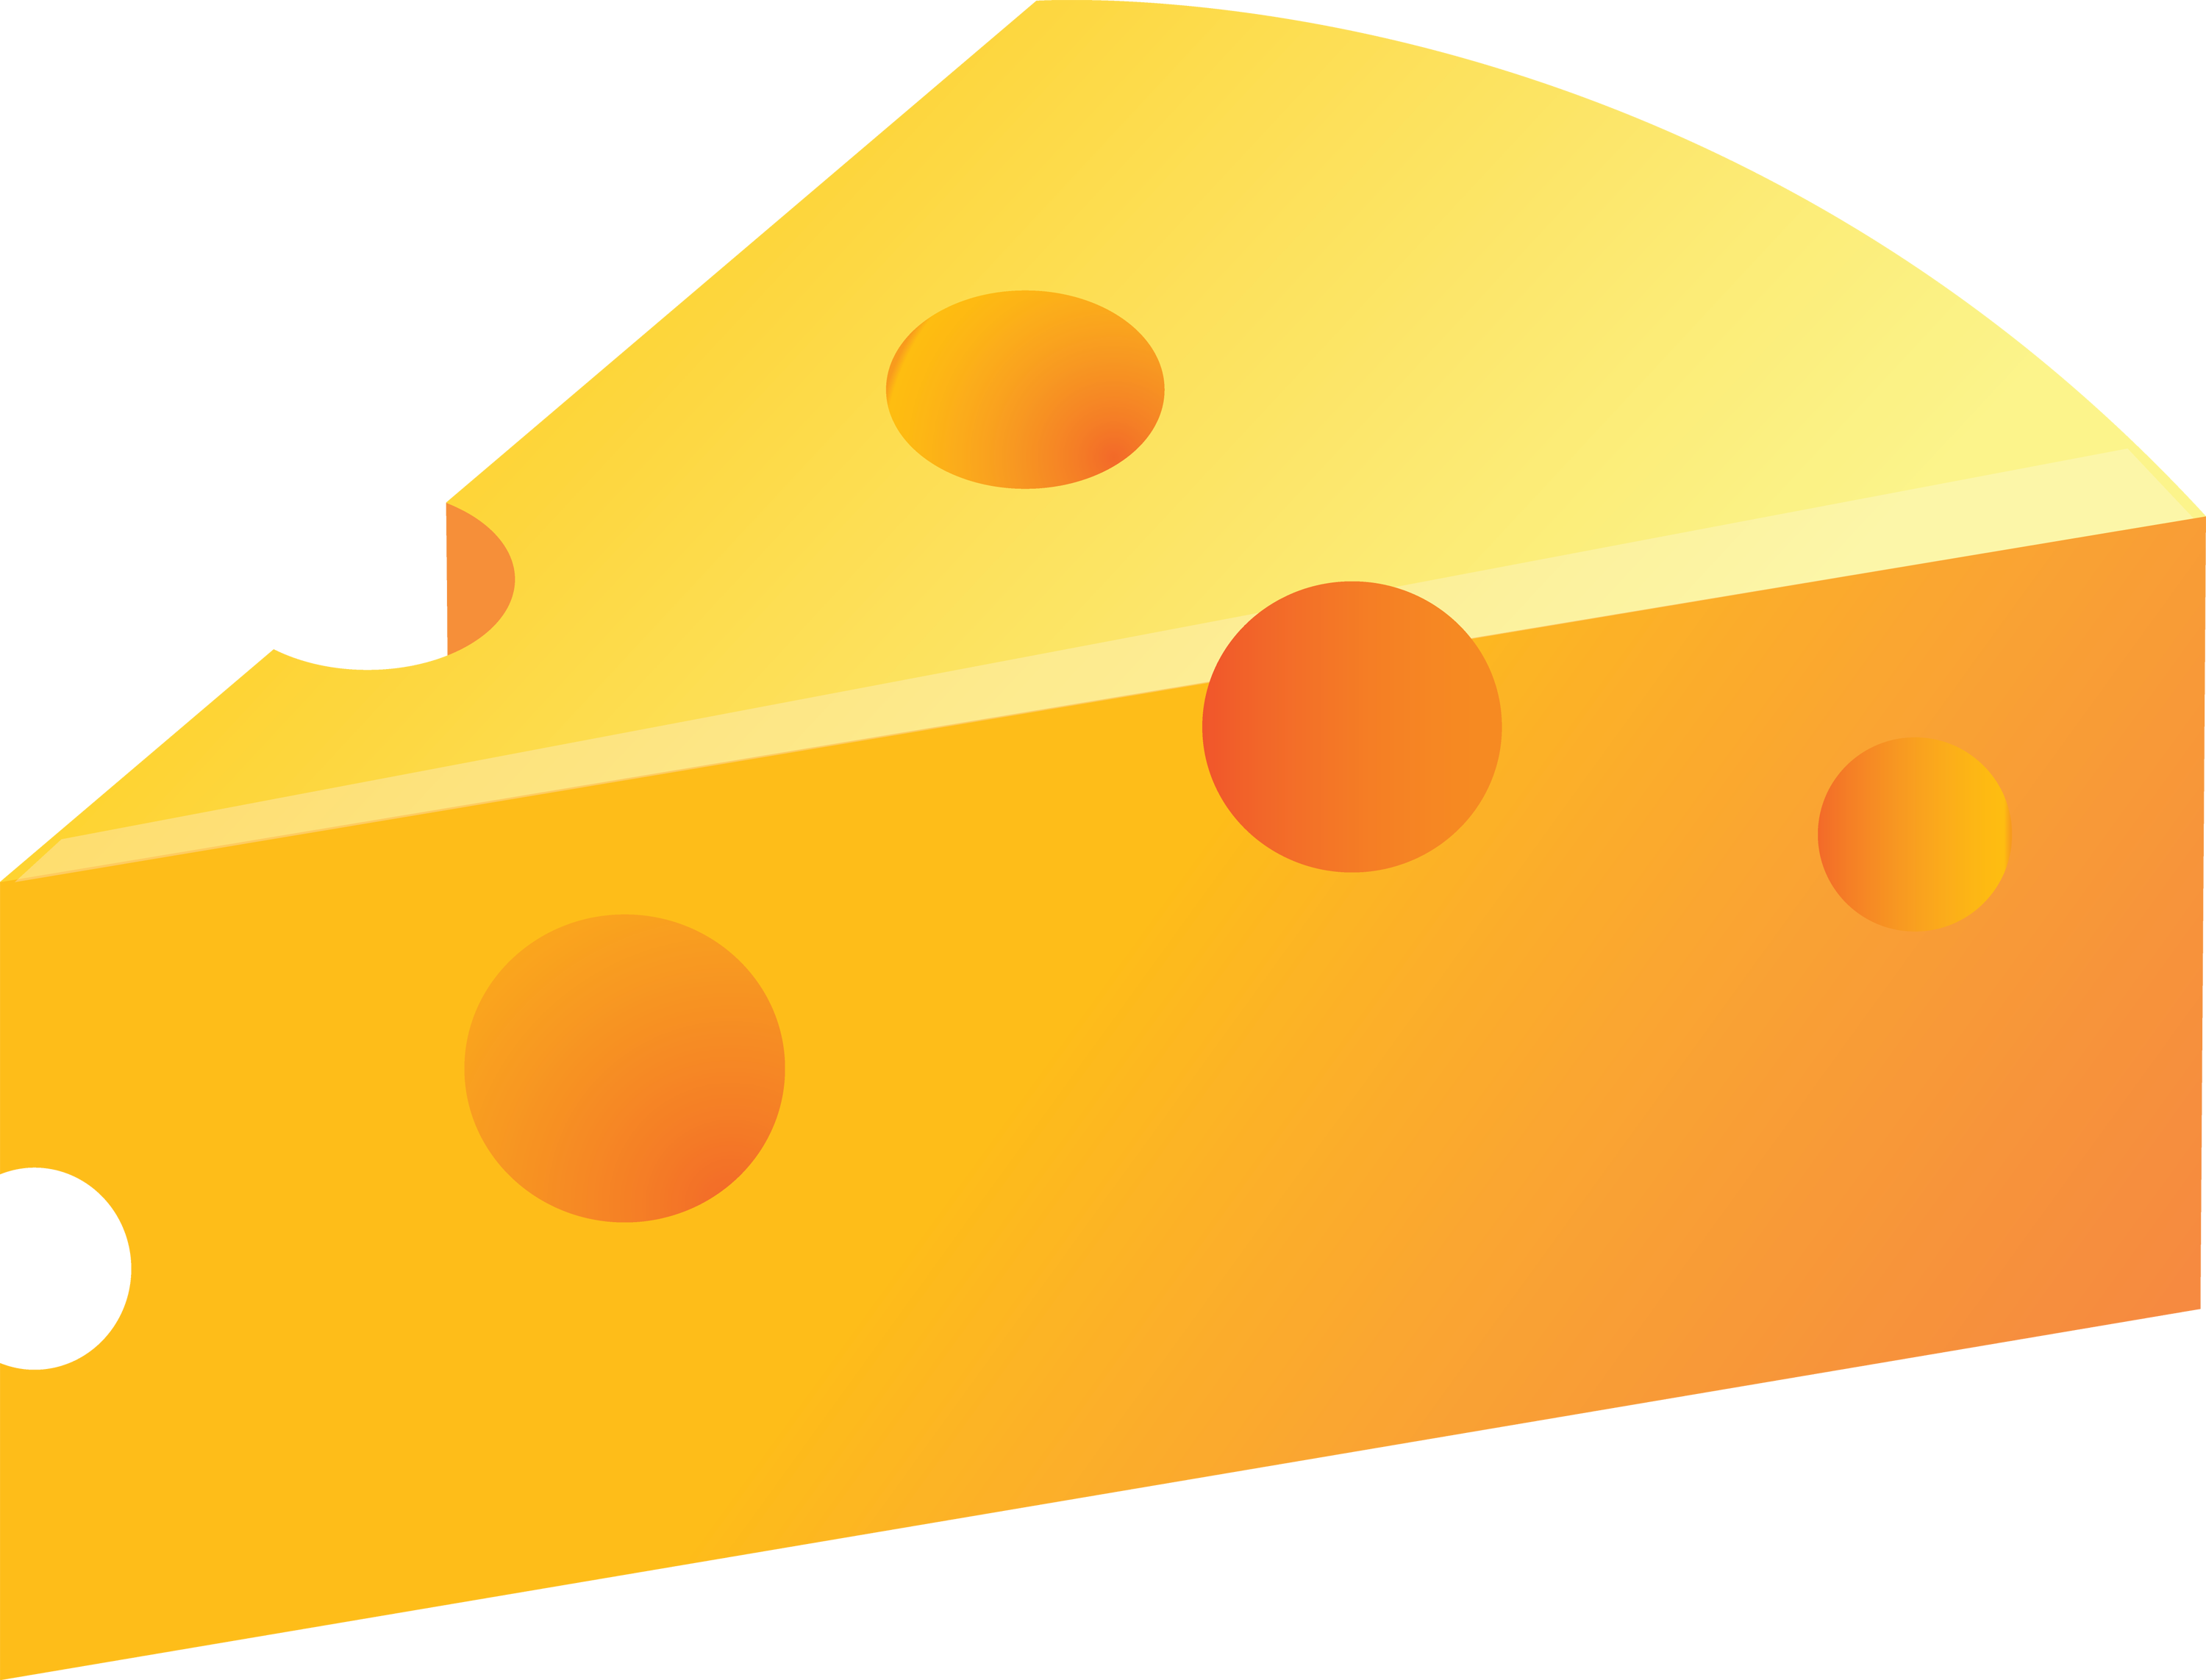 Cheese Images image #48399